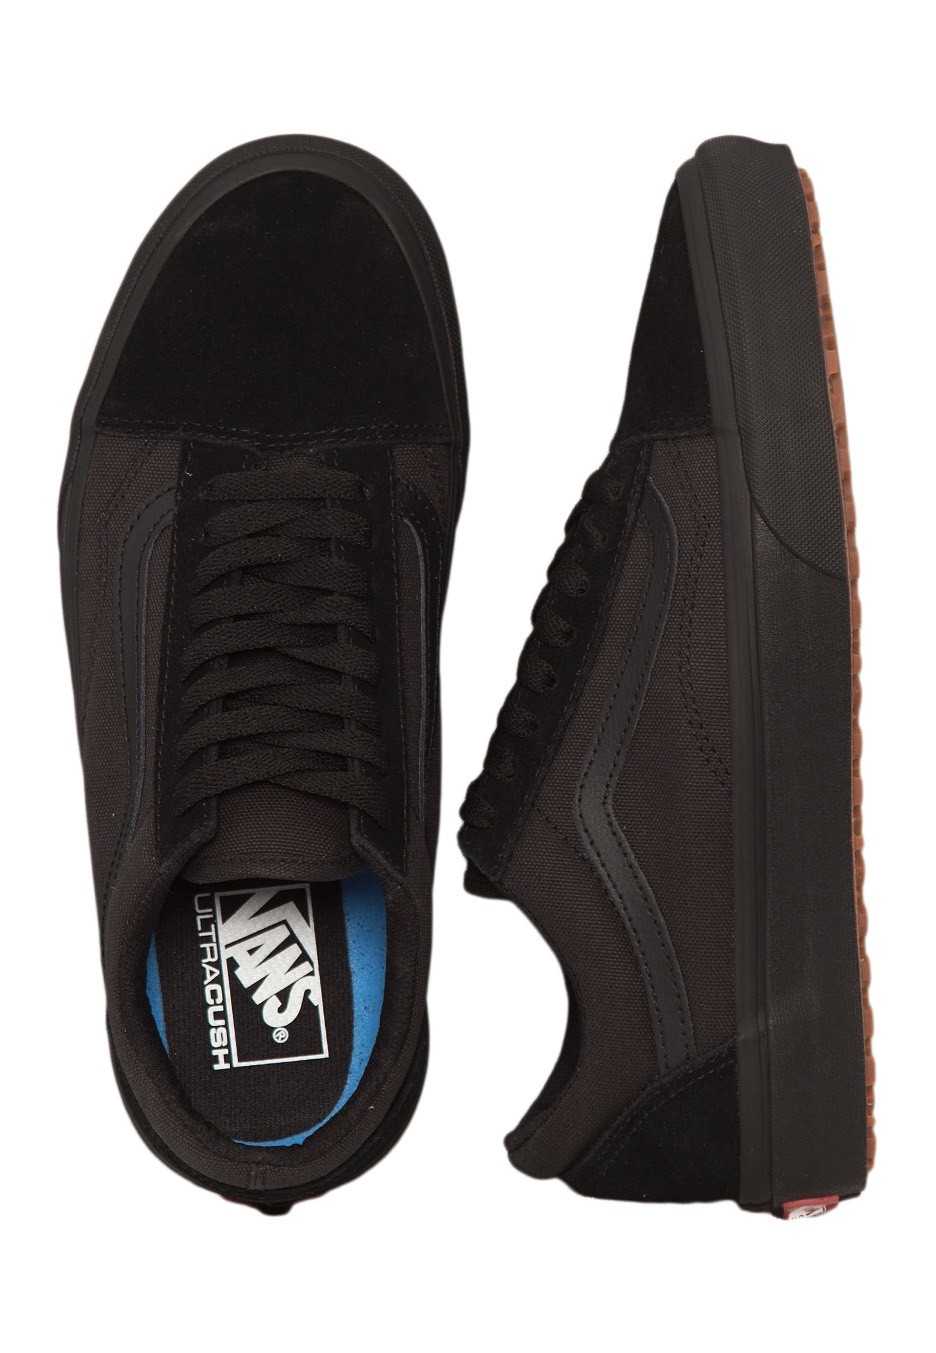 b78ea2e2a4 Vans - Old Skool UC Made for the Makers Black Black - Shoes - Impericon.com  Worldwide